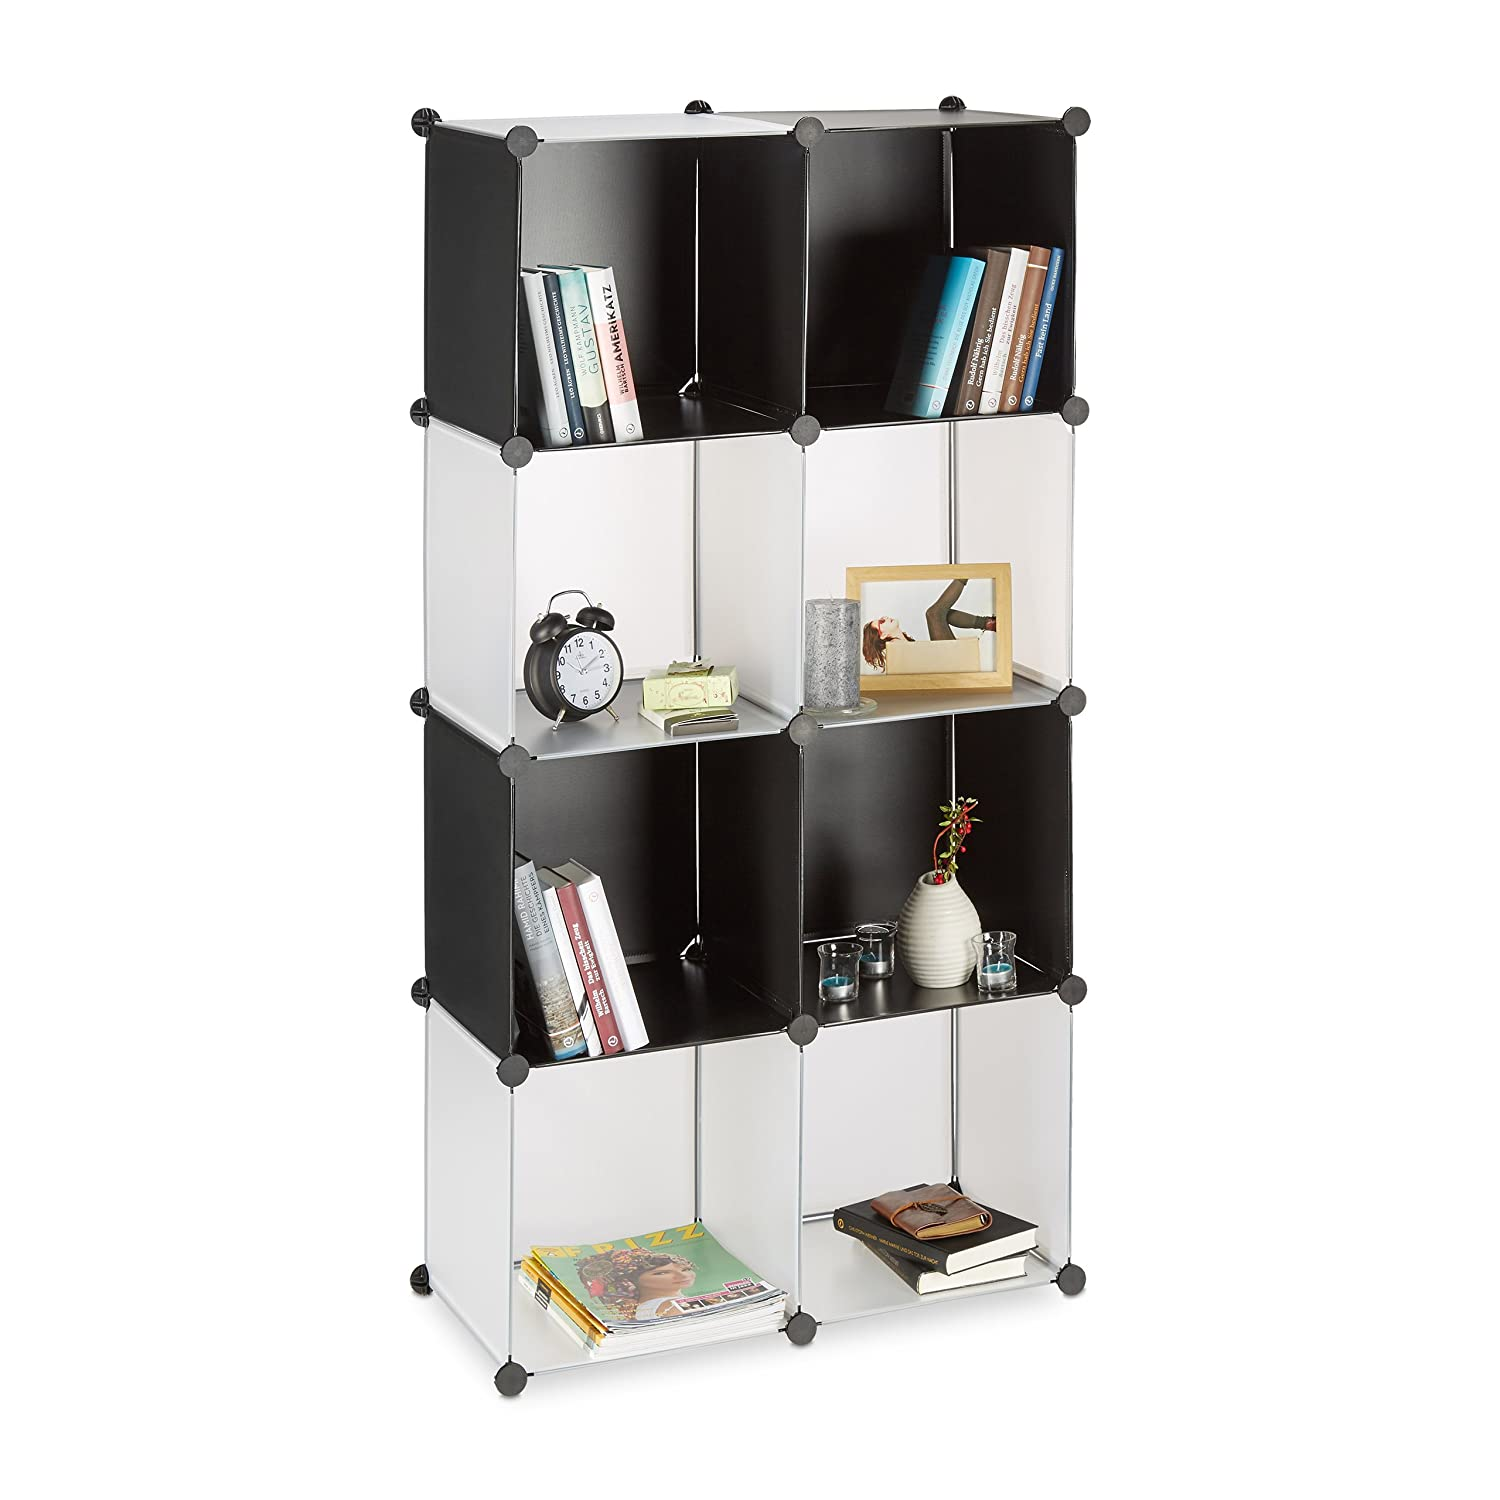 Relaxdays Plastic Shelving System, Open Modular Shelf, Plug-In Room Divider,8 Compartments, Black-Transparent 10021980_408